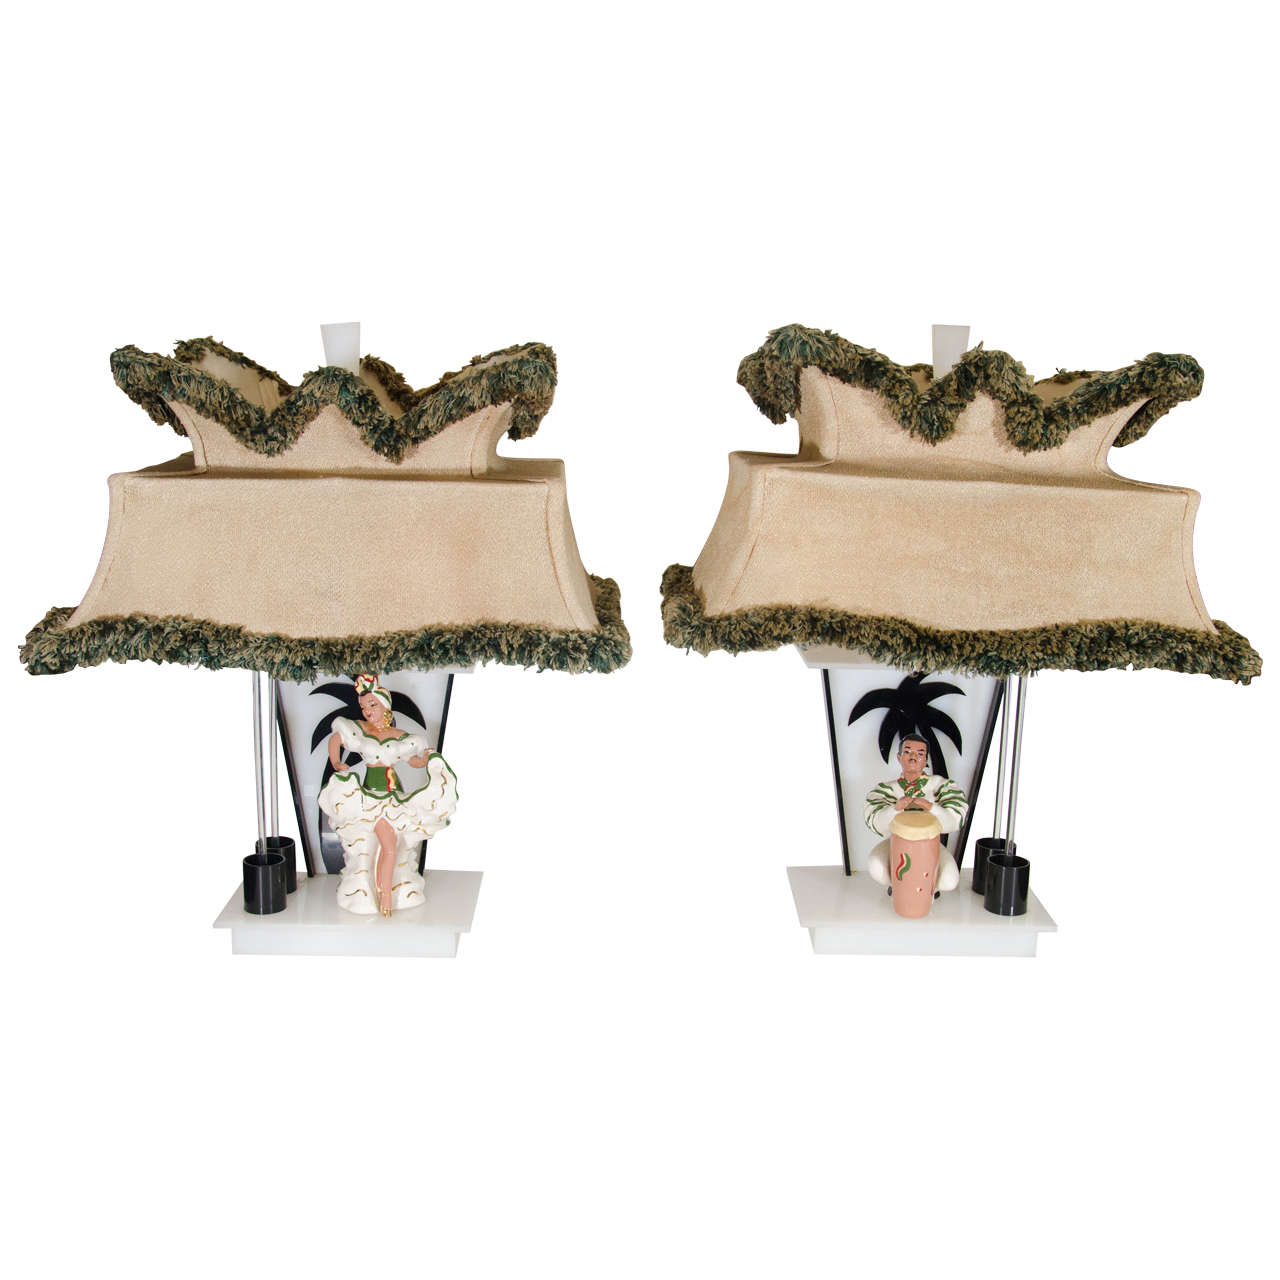 Amazing Pair Of Rare Moss Lamps With Ceramic Figures Of Conga Player And Dancer At 1stdibs